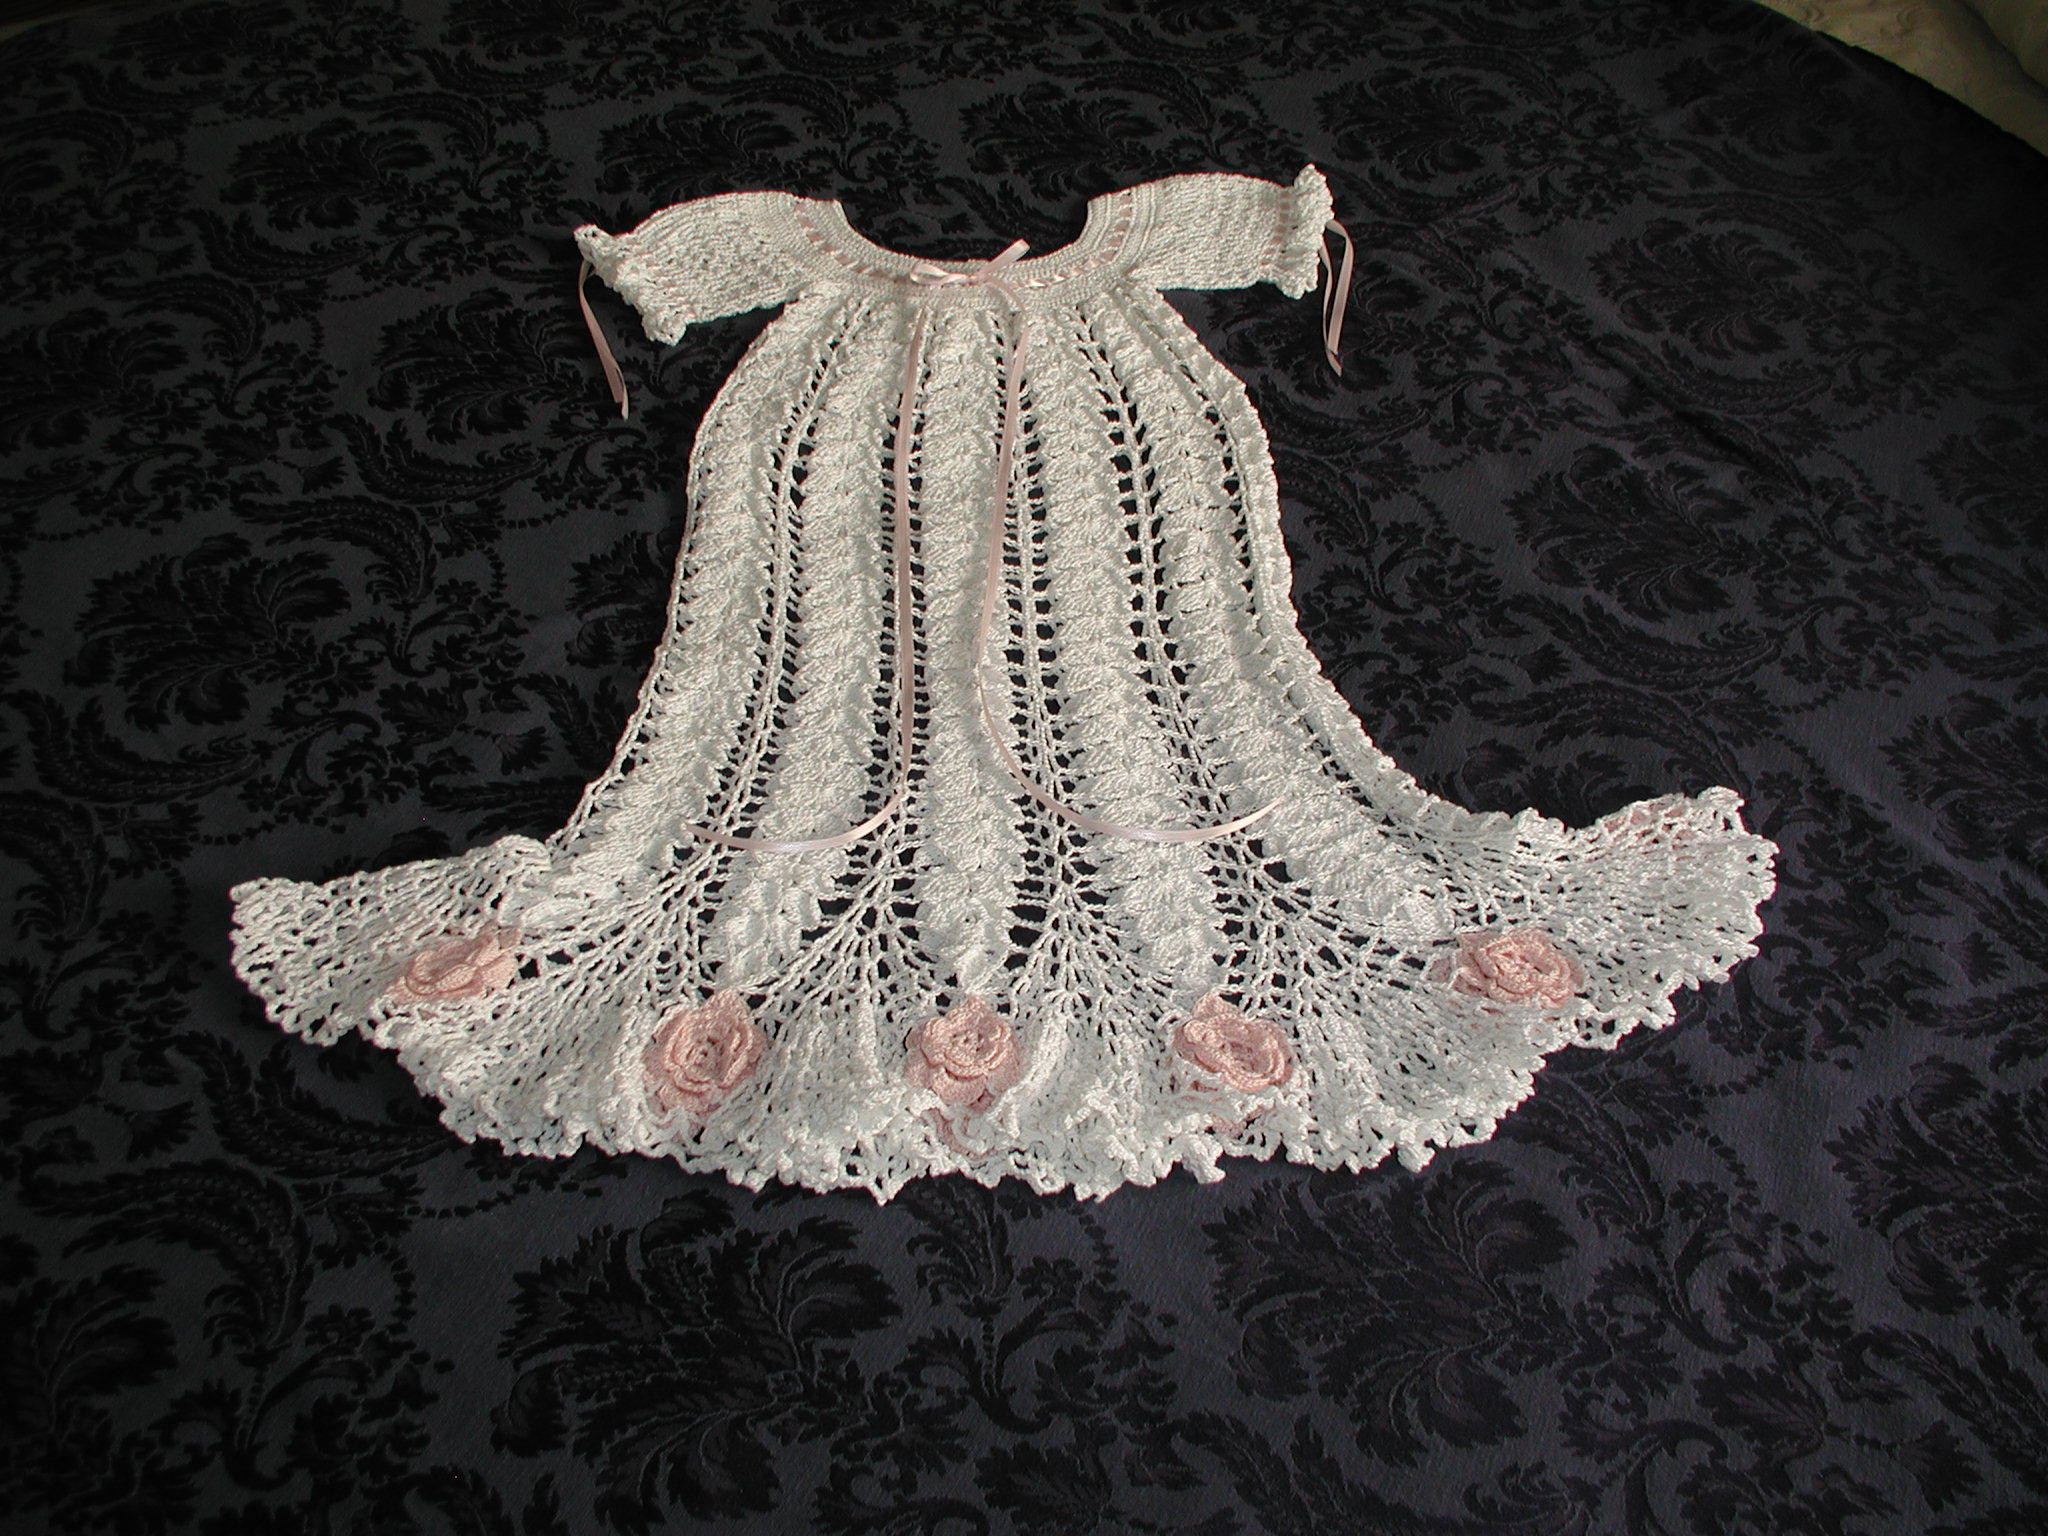 Best Of Cameo Rose Christening Gown Crochet Project by Karen B Christening Dress Patterns Of Awesome 43 Ideas Christening Dress Patterns